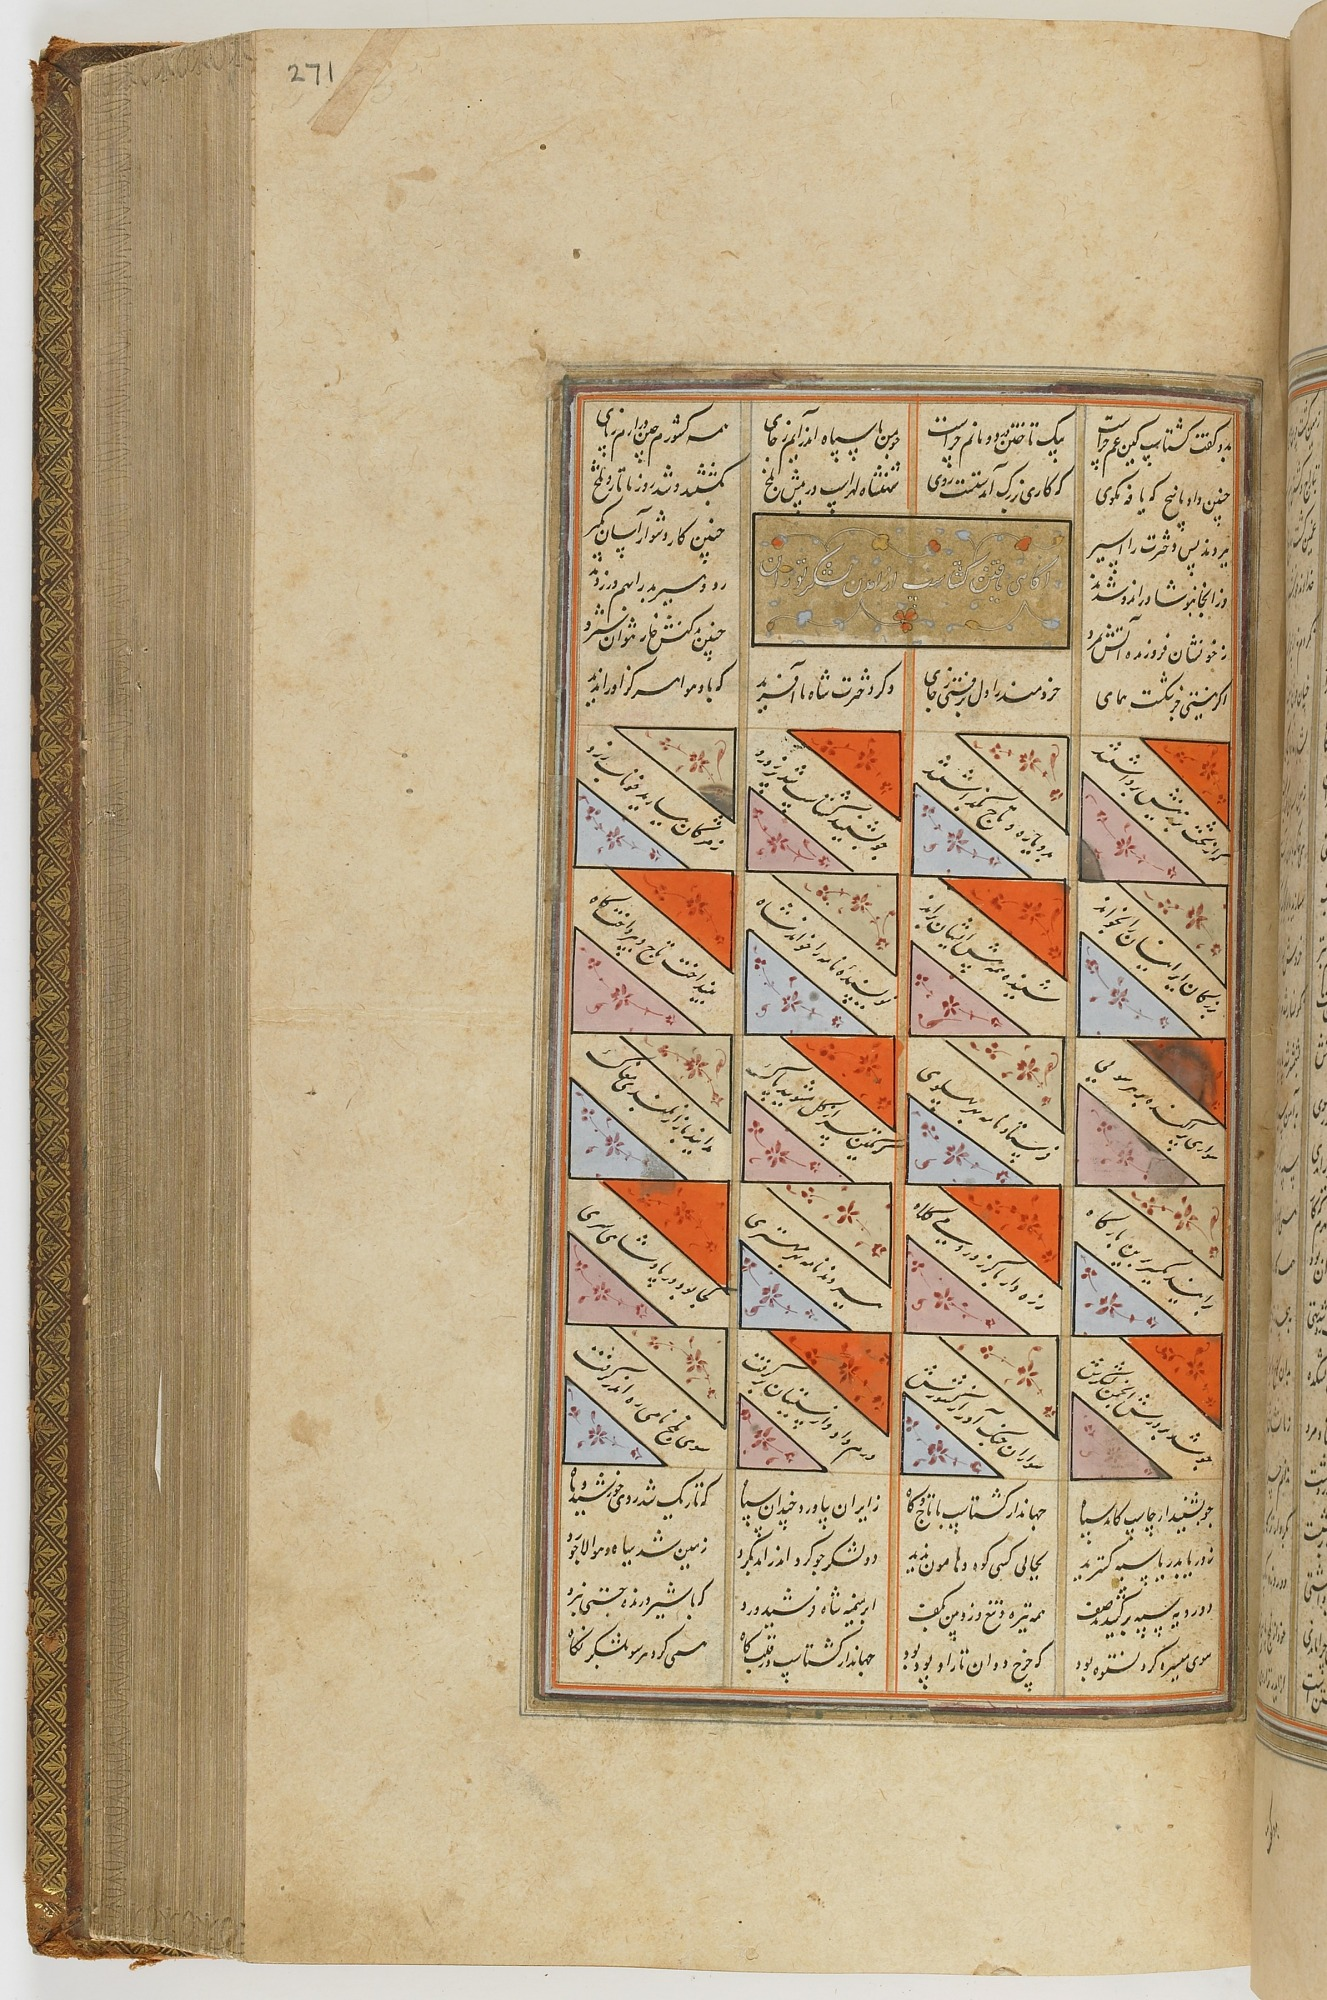 folio 271 recto: The Shahnama (Book of kings) by Firdausi (d. 1020)